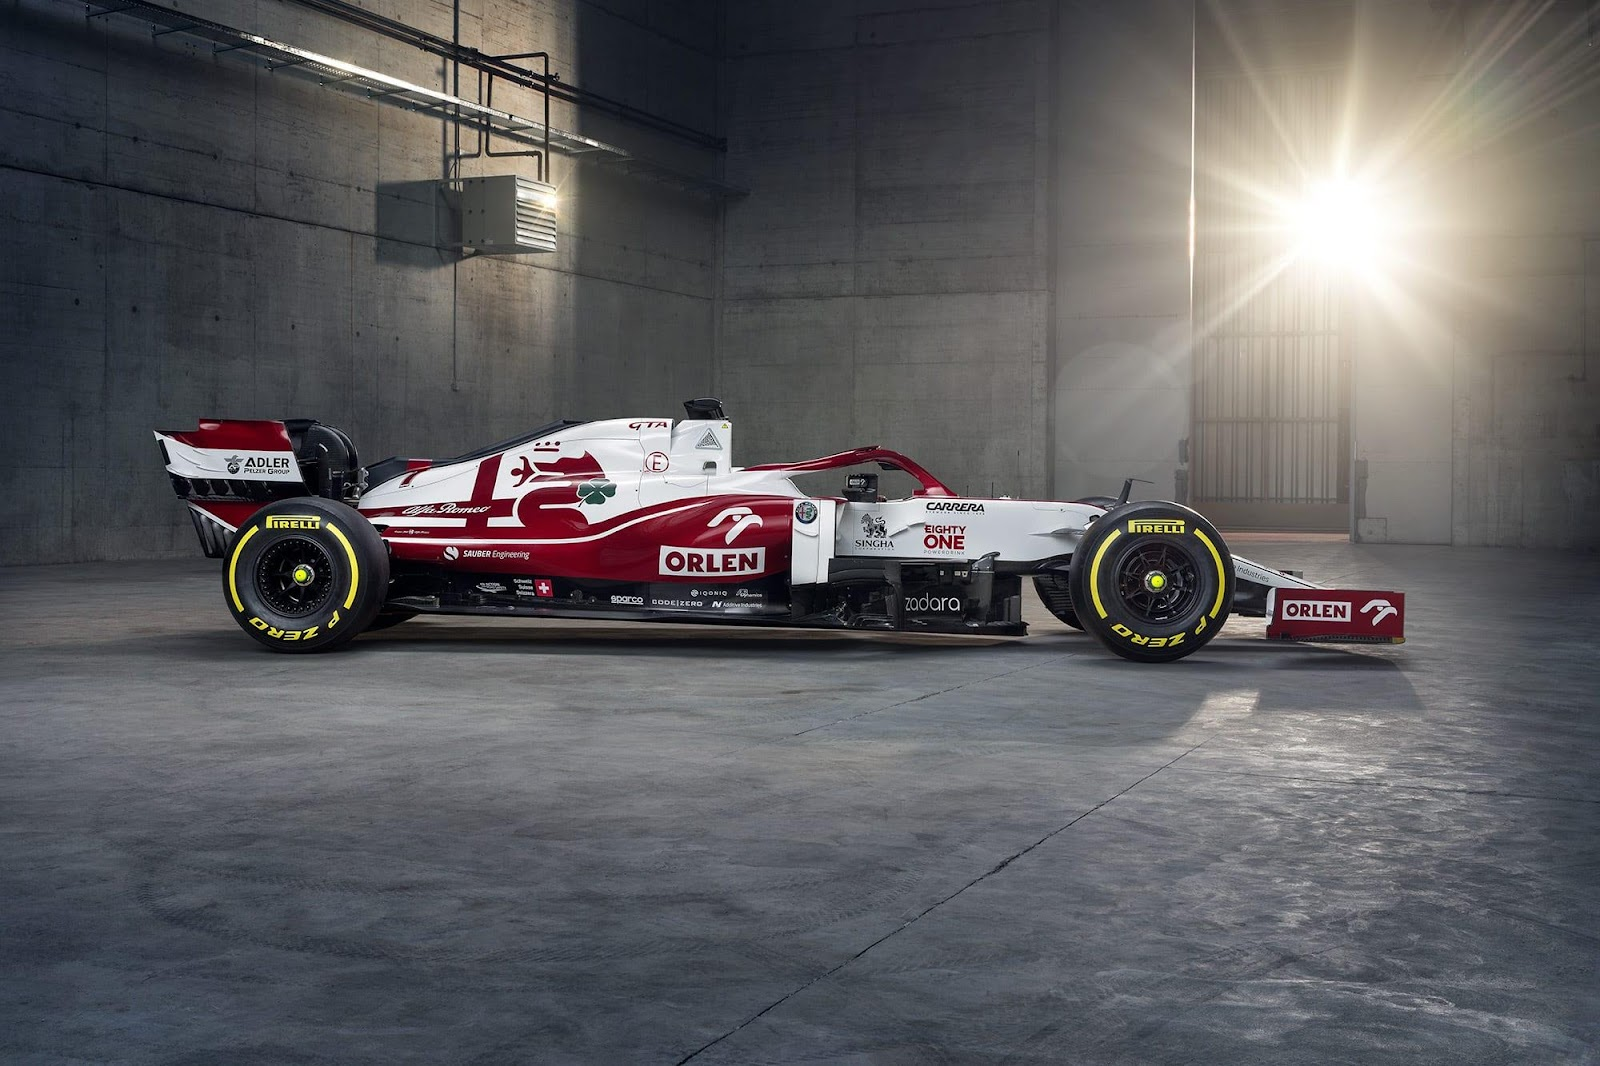 Alfa Romeo launches 2021 F1 car and revised livery - The Race